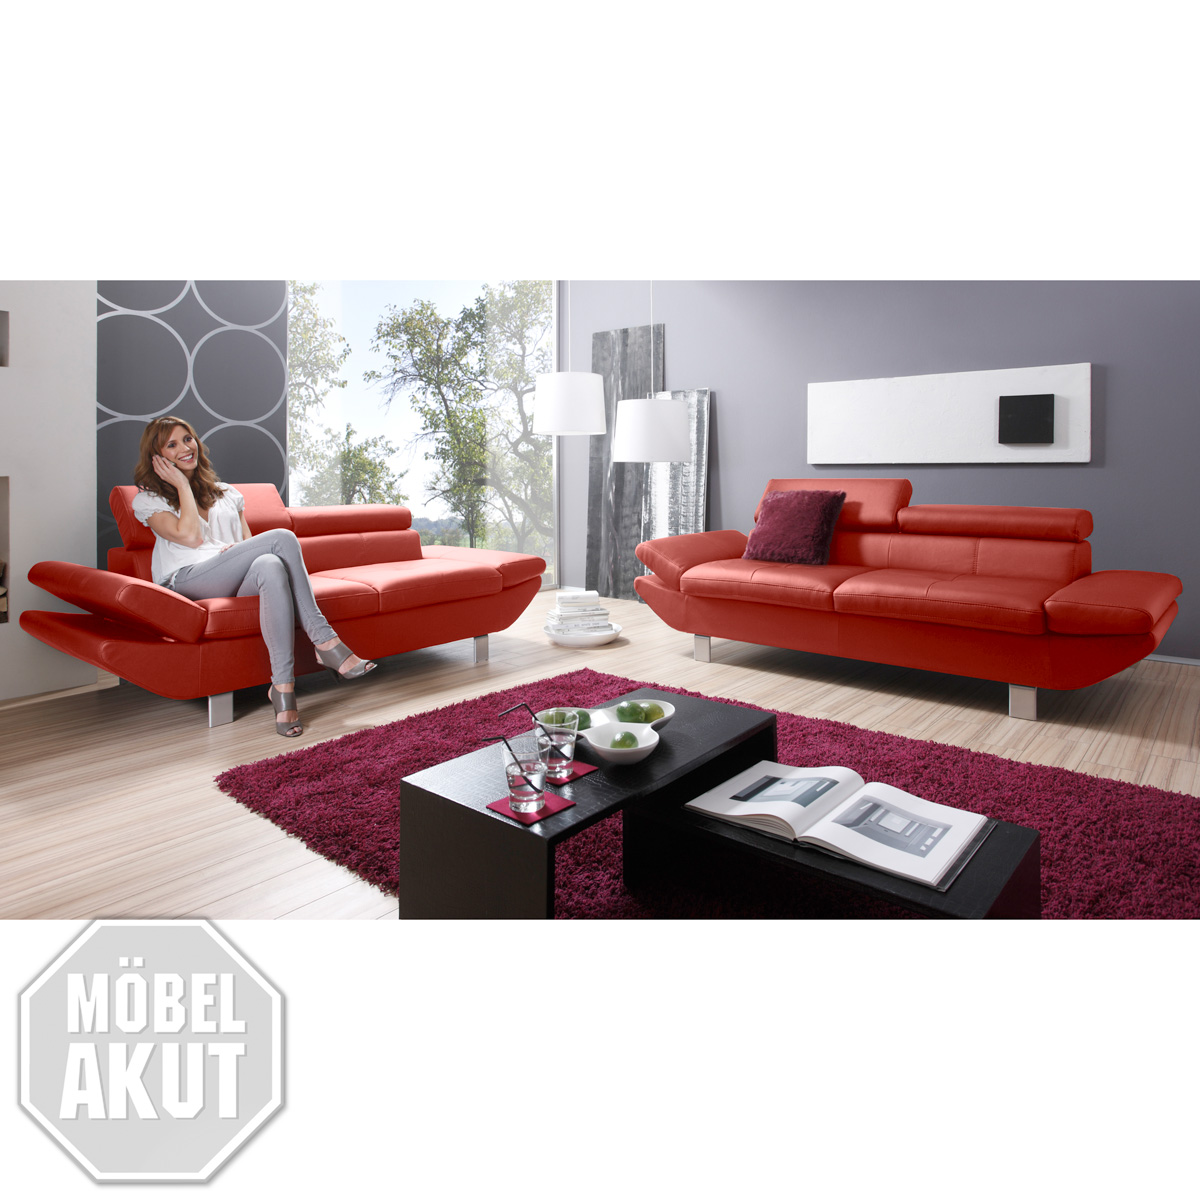 sofa garnitur carrier polsterm bel mit relaxfunkion in rot ebay. Black Bedroom Furniture Sets. Home Design Ideas